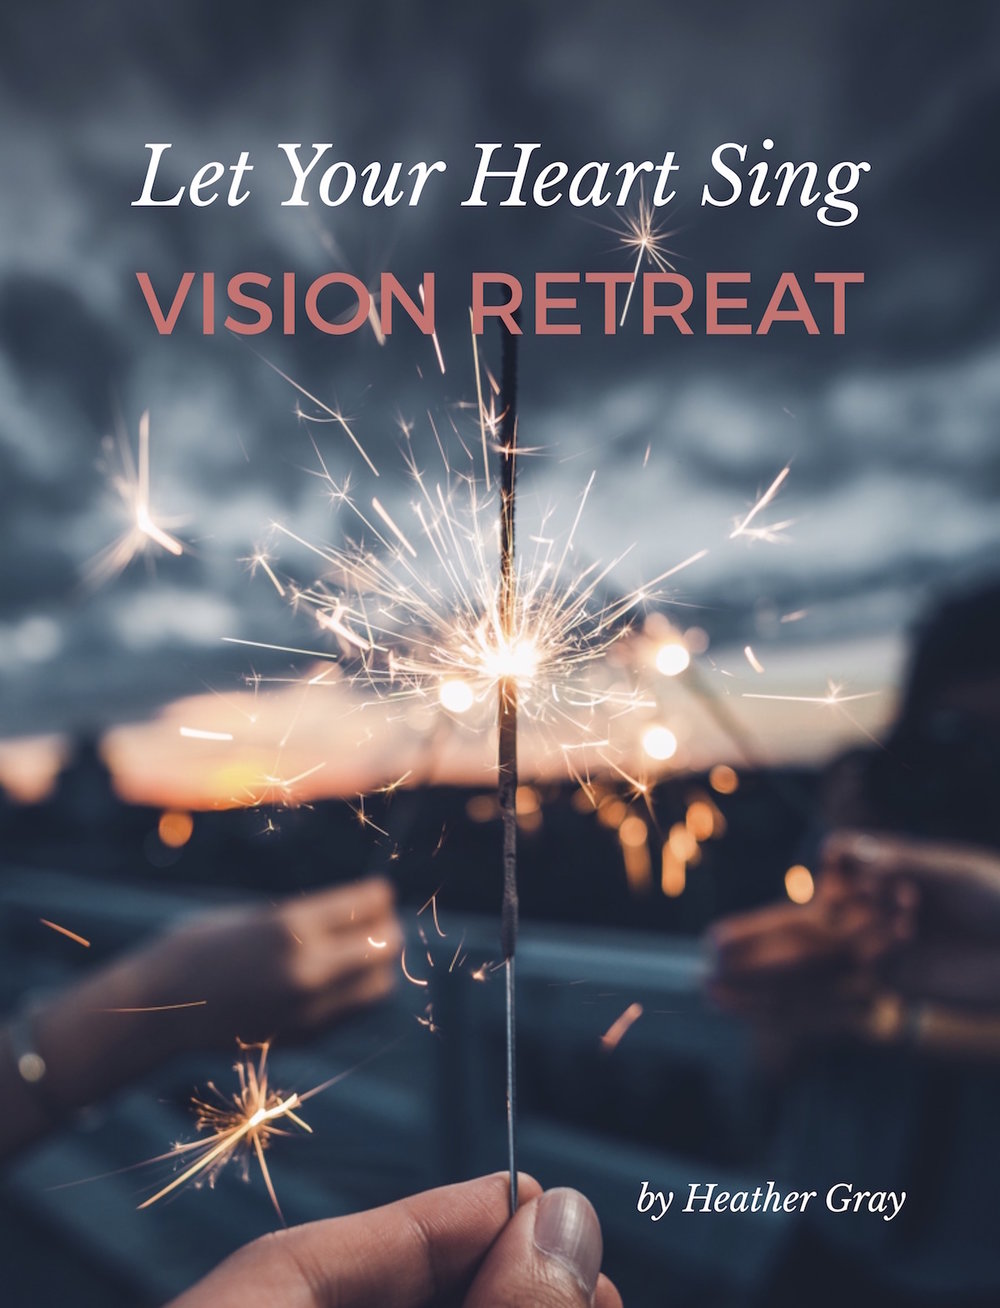 Let Your Heart Sing Vision Retreat Guidebook Cover.jpg